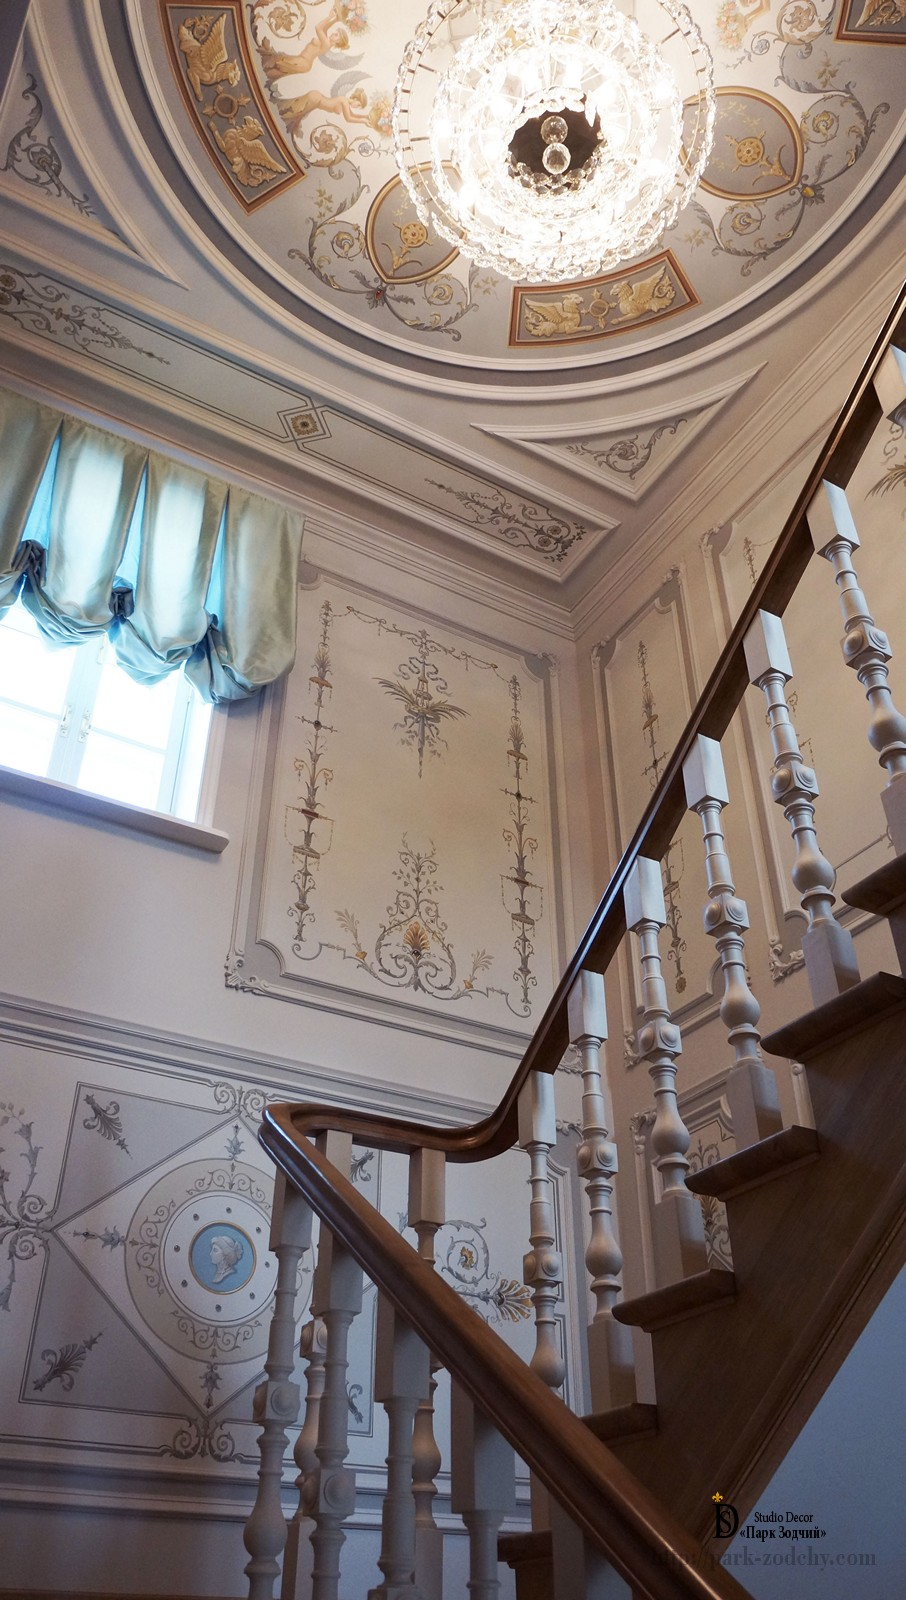 The main staircase is decorated with paintings almaney